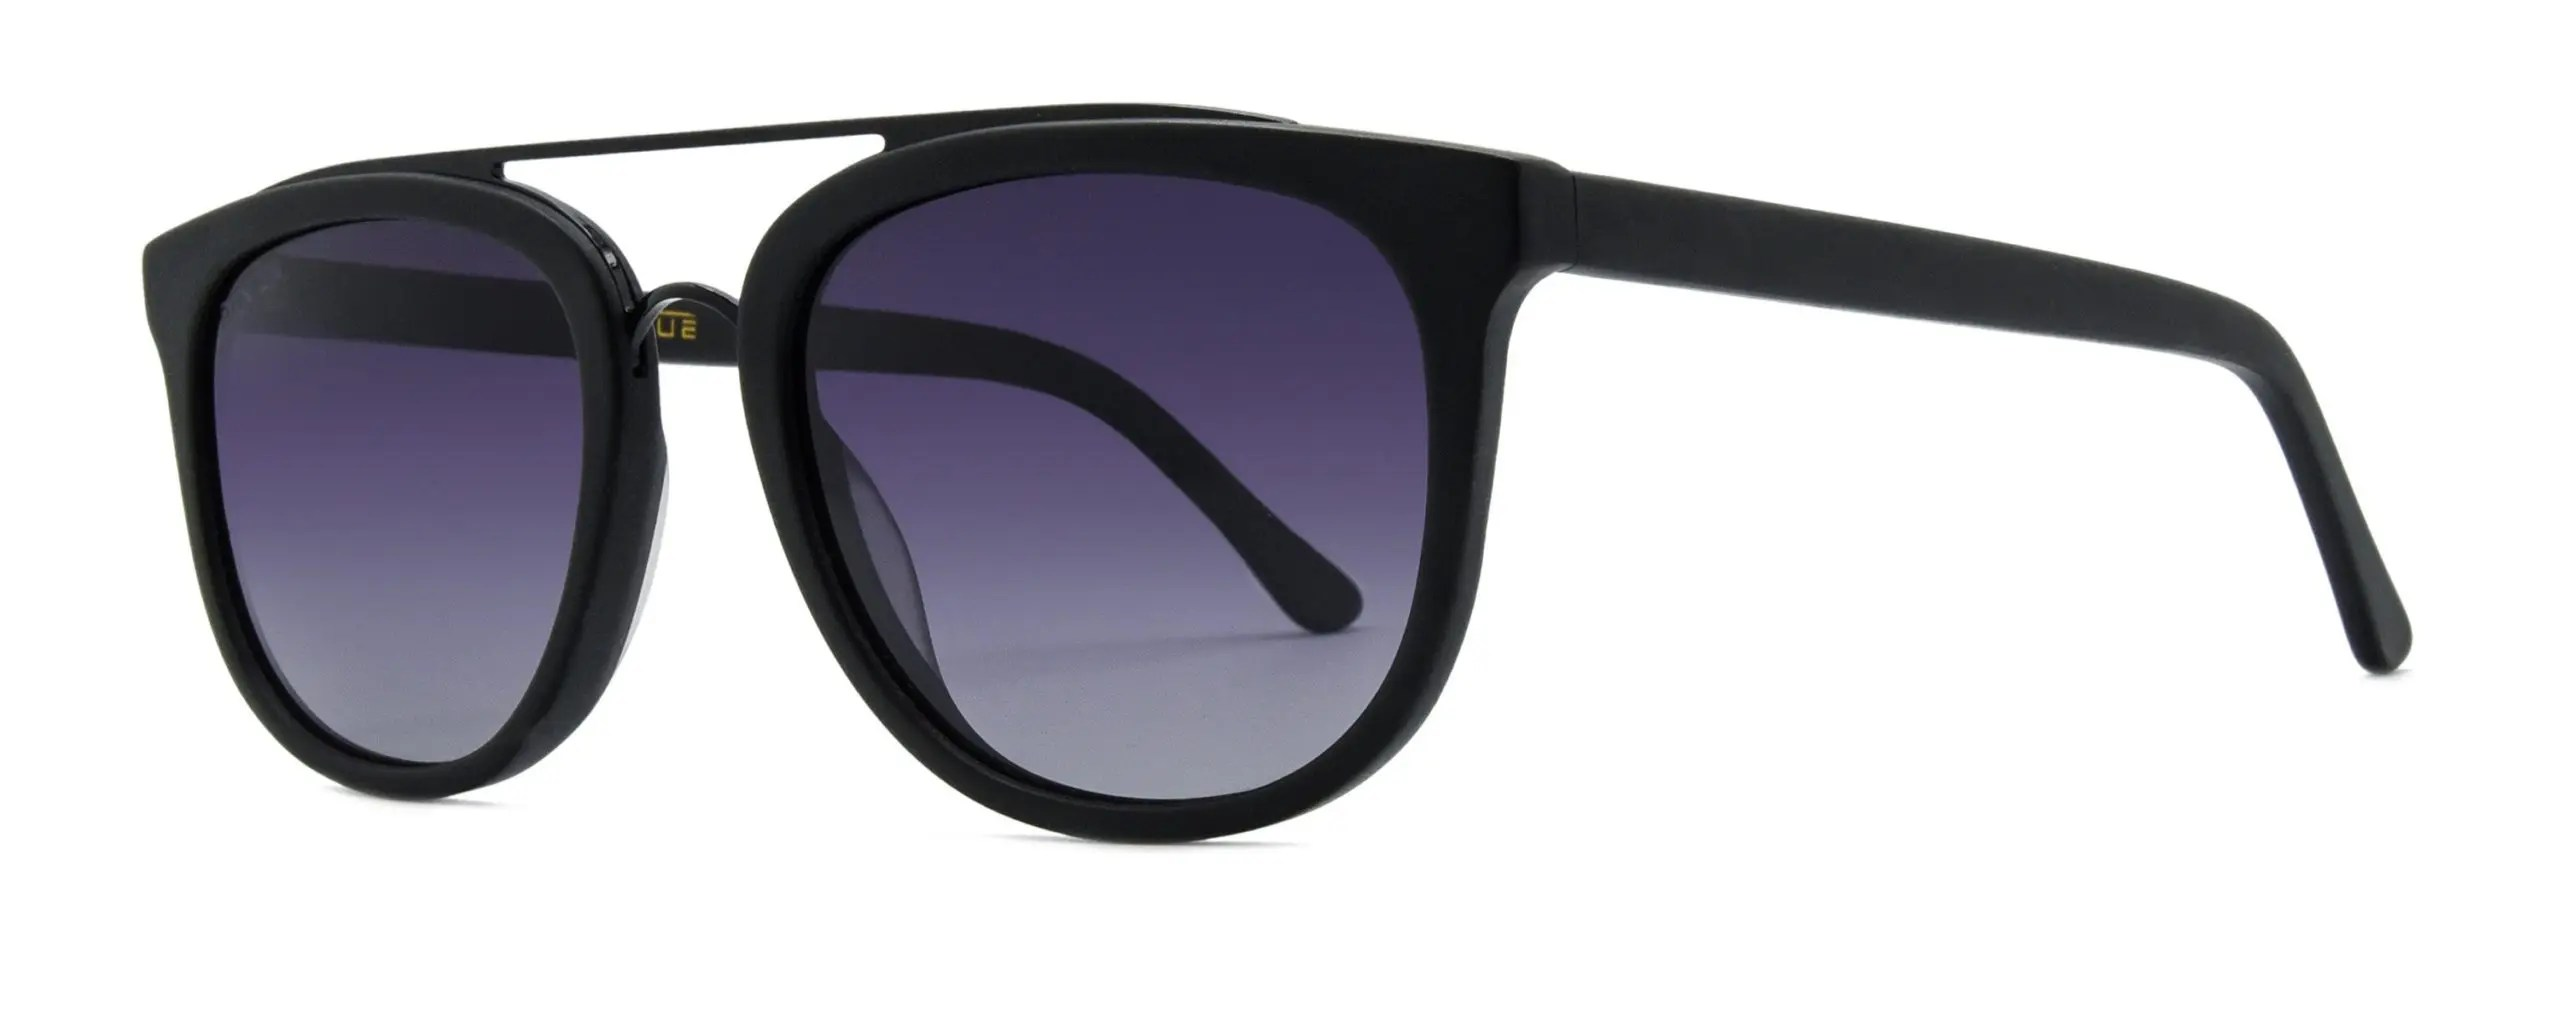 Zena - Matte Black - Black Gradient Polarized Grey Lenses - Angle